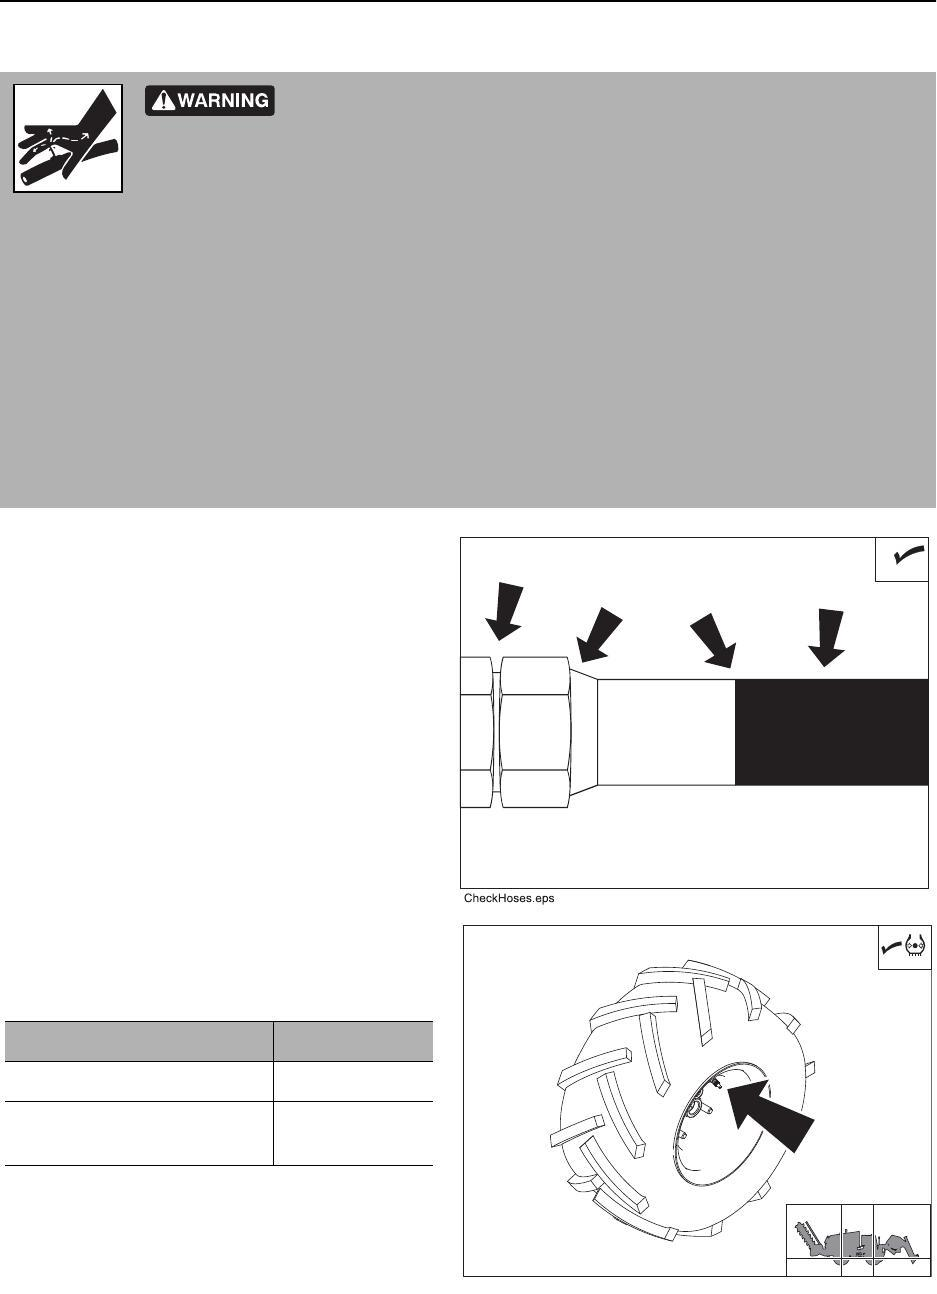 Ditch Witch 410sx Wiring Diagram Electrical Diagrams Operators Manual Download Page 89 Sakai